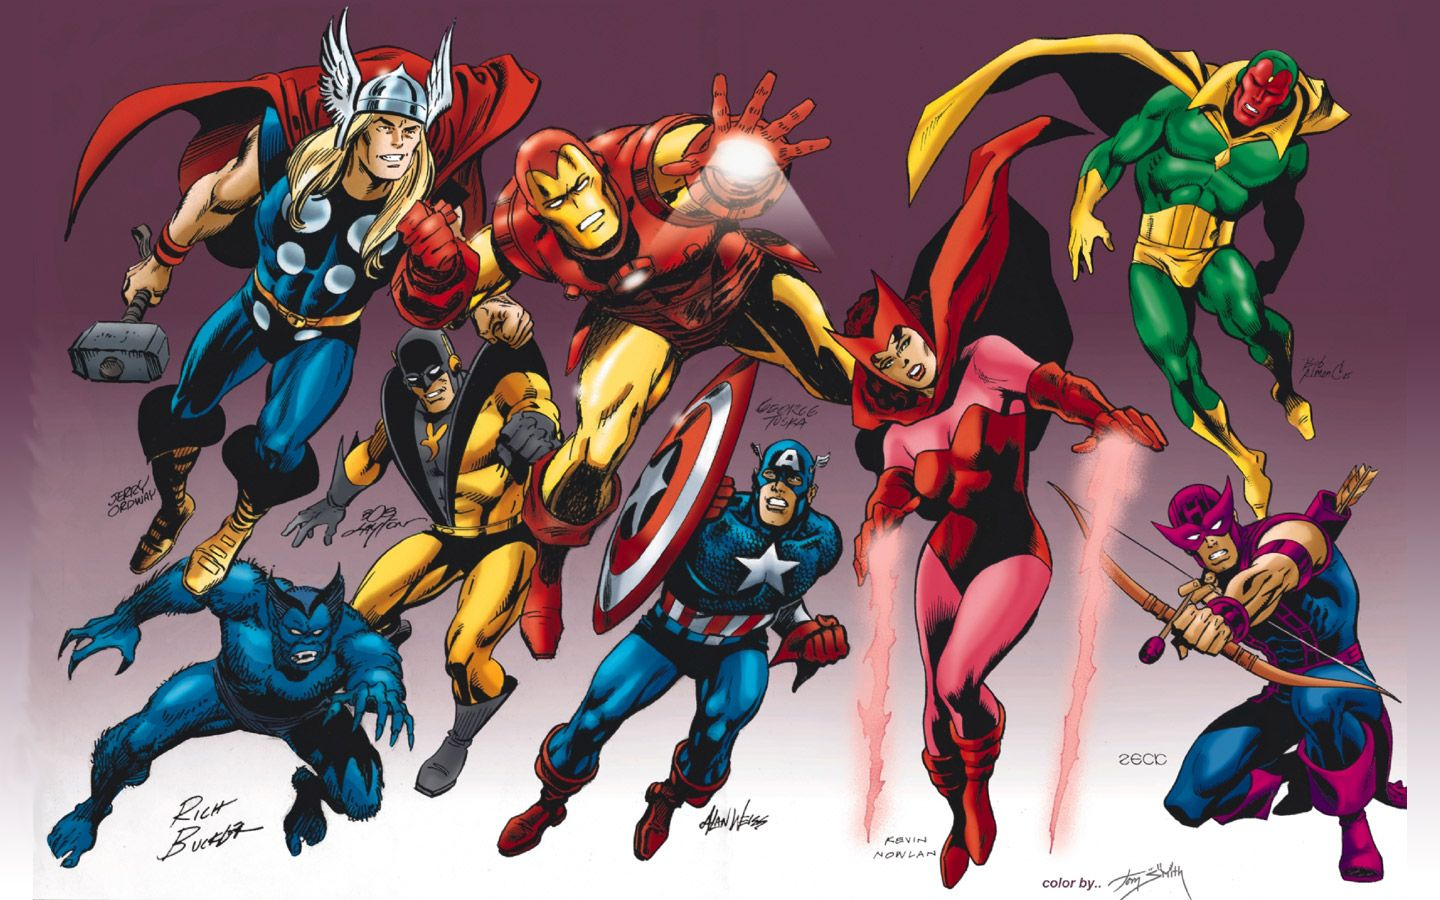 Ultimate Avengers Coloring Pages : Ultimate avengers wallpaper eight super heroes on the air marvel